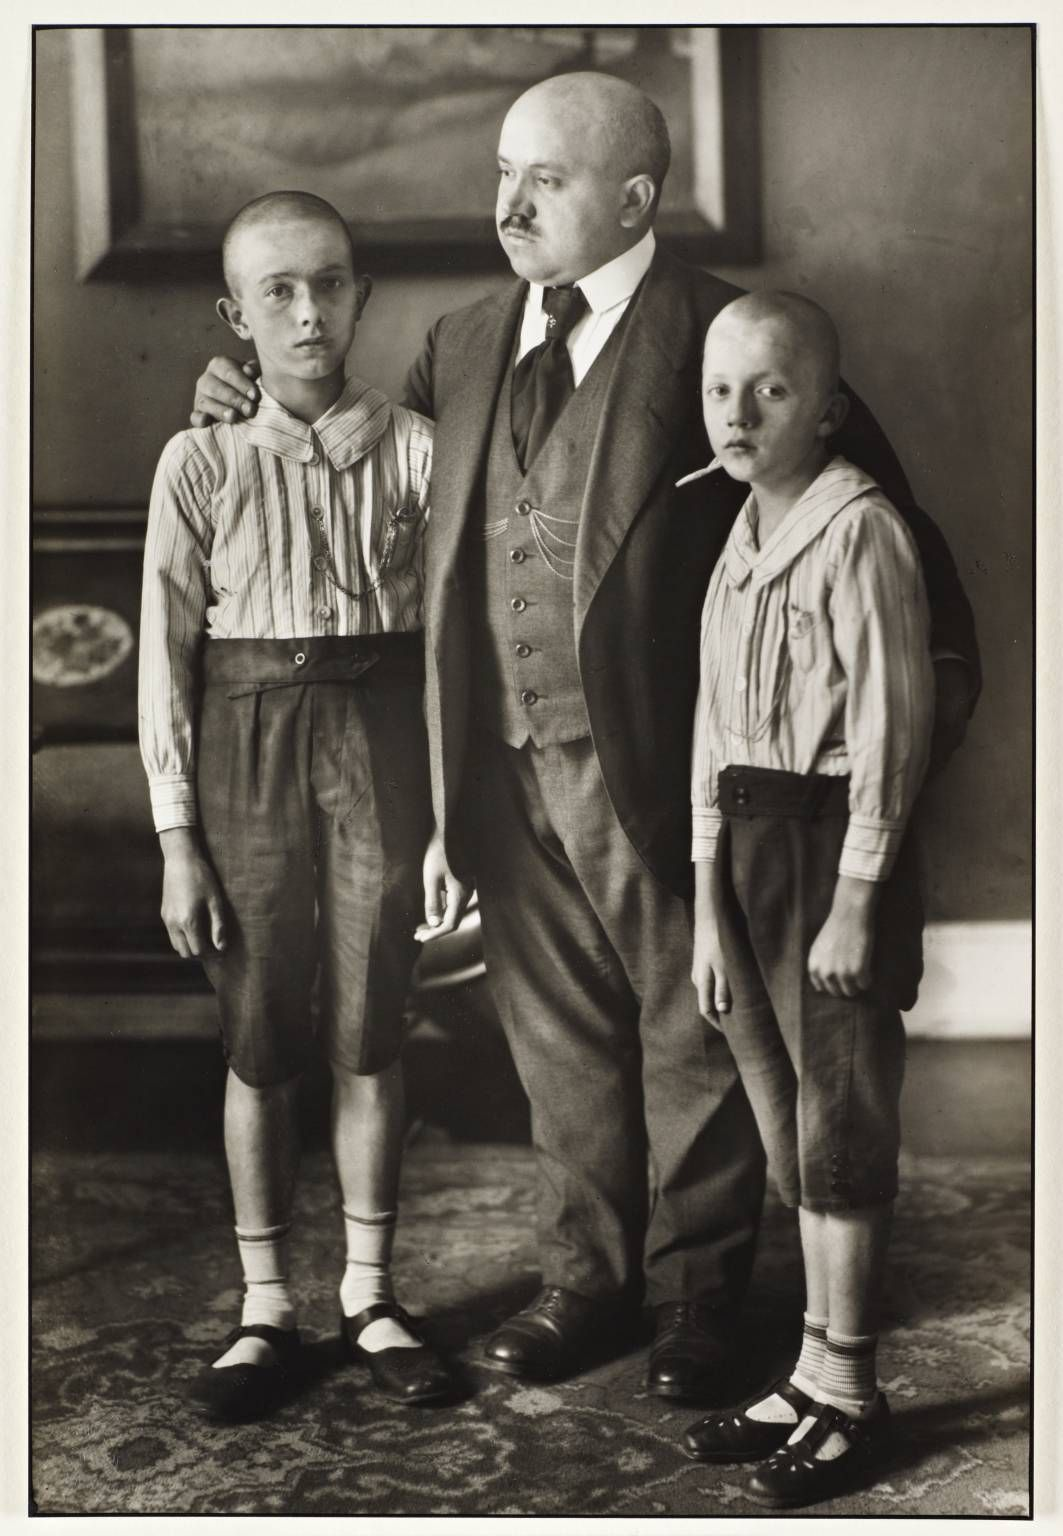 August Sander Art By Degrees No Rhyme Or Reason